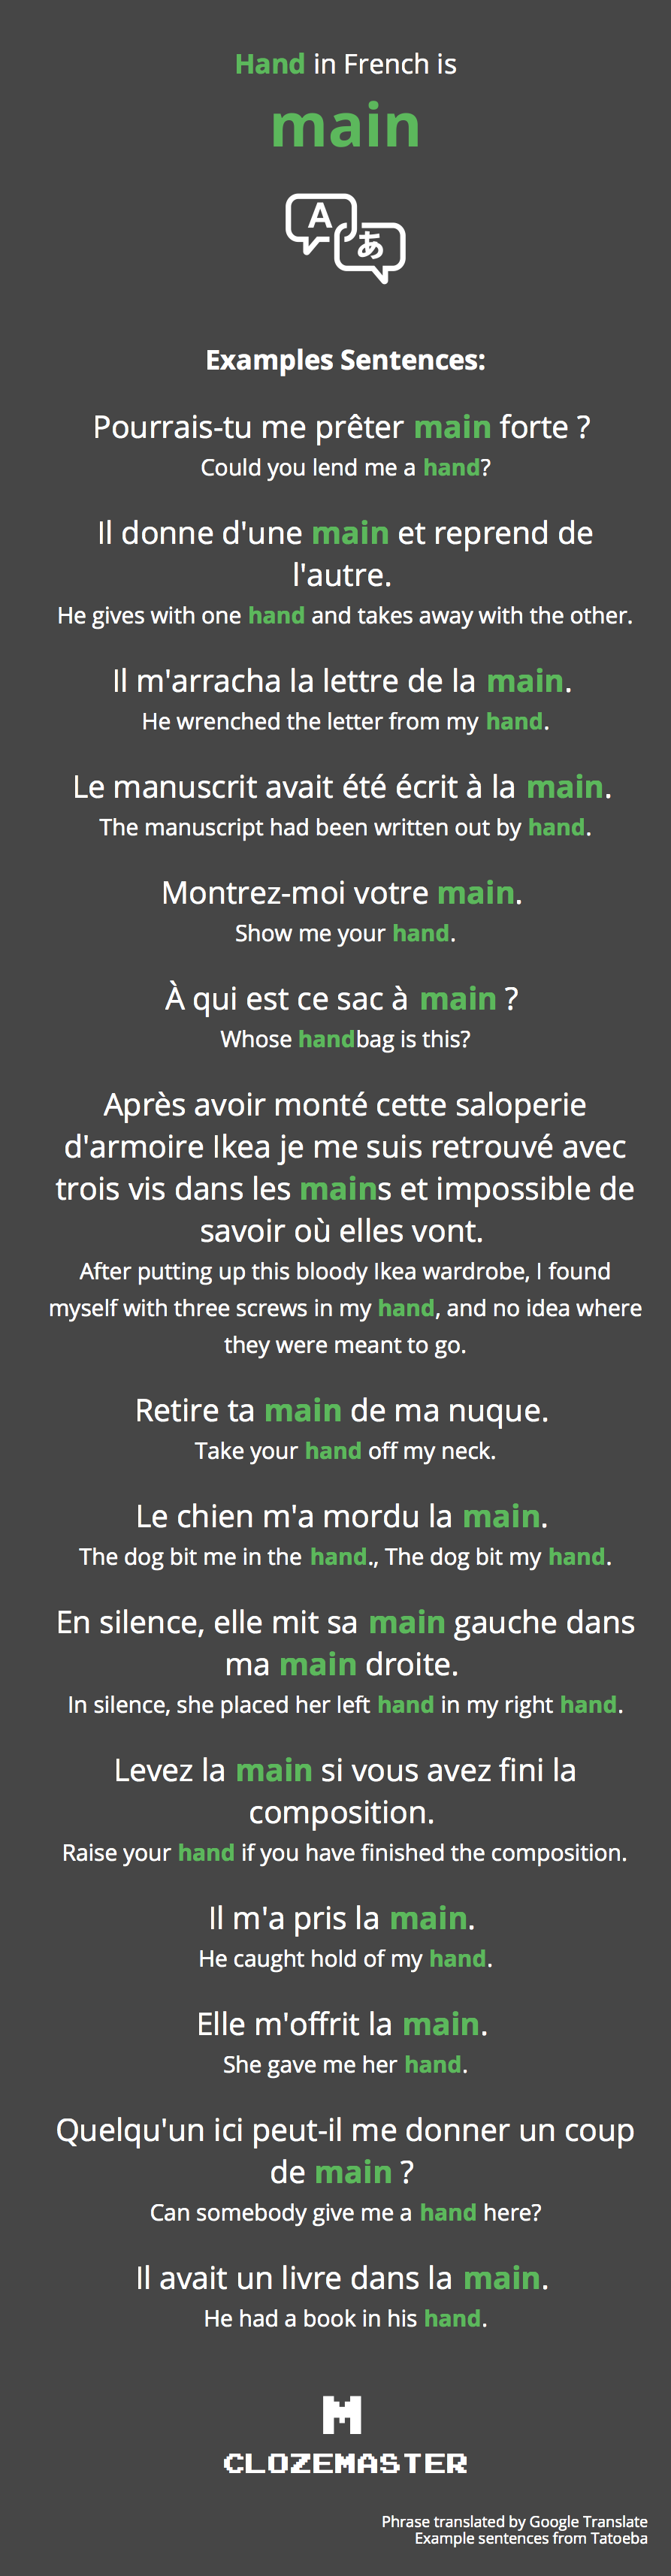 How to say hand in french clozemaster hand in french translation and example sentences solutioingenieria Gallery